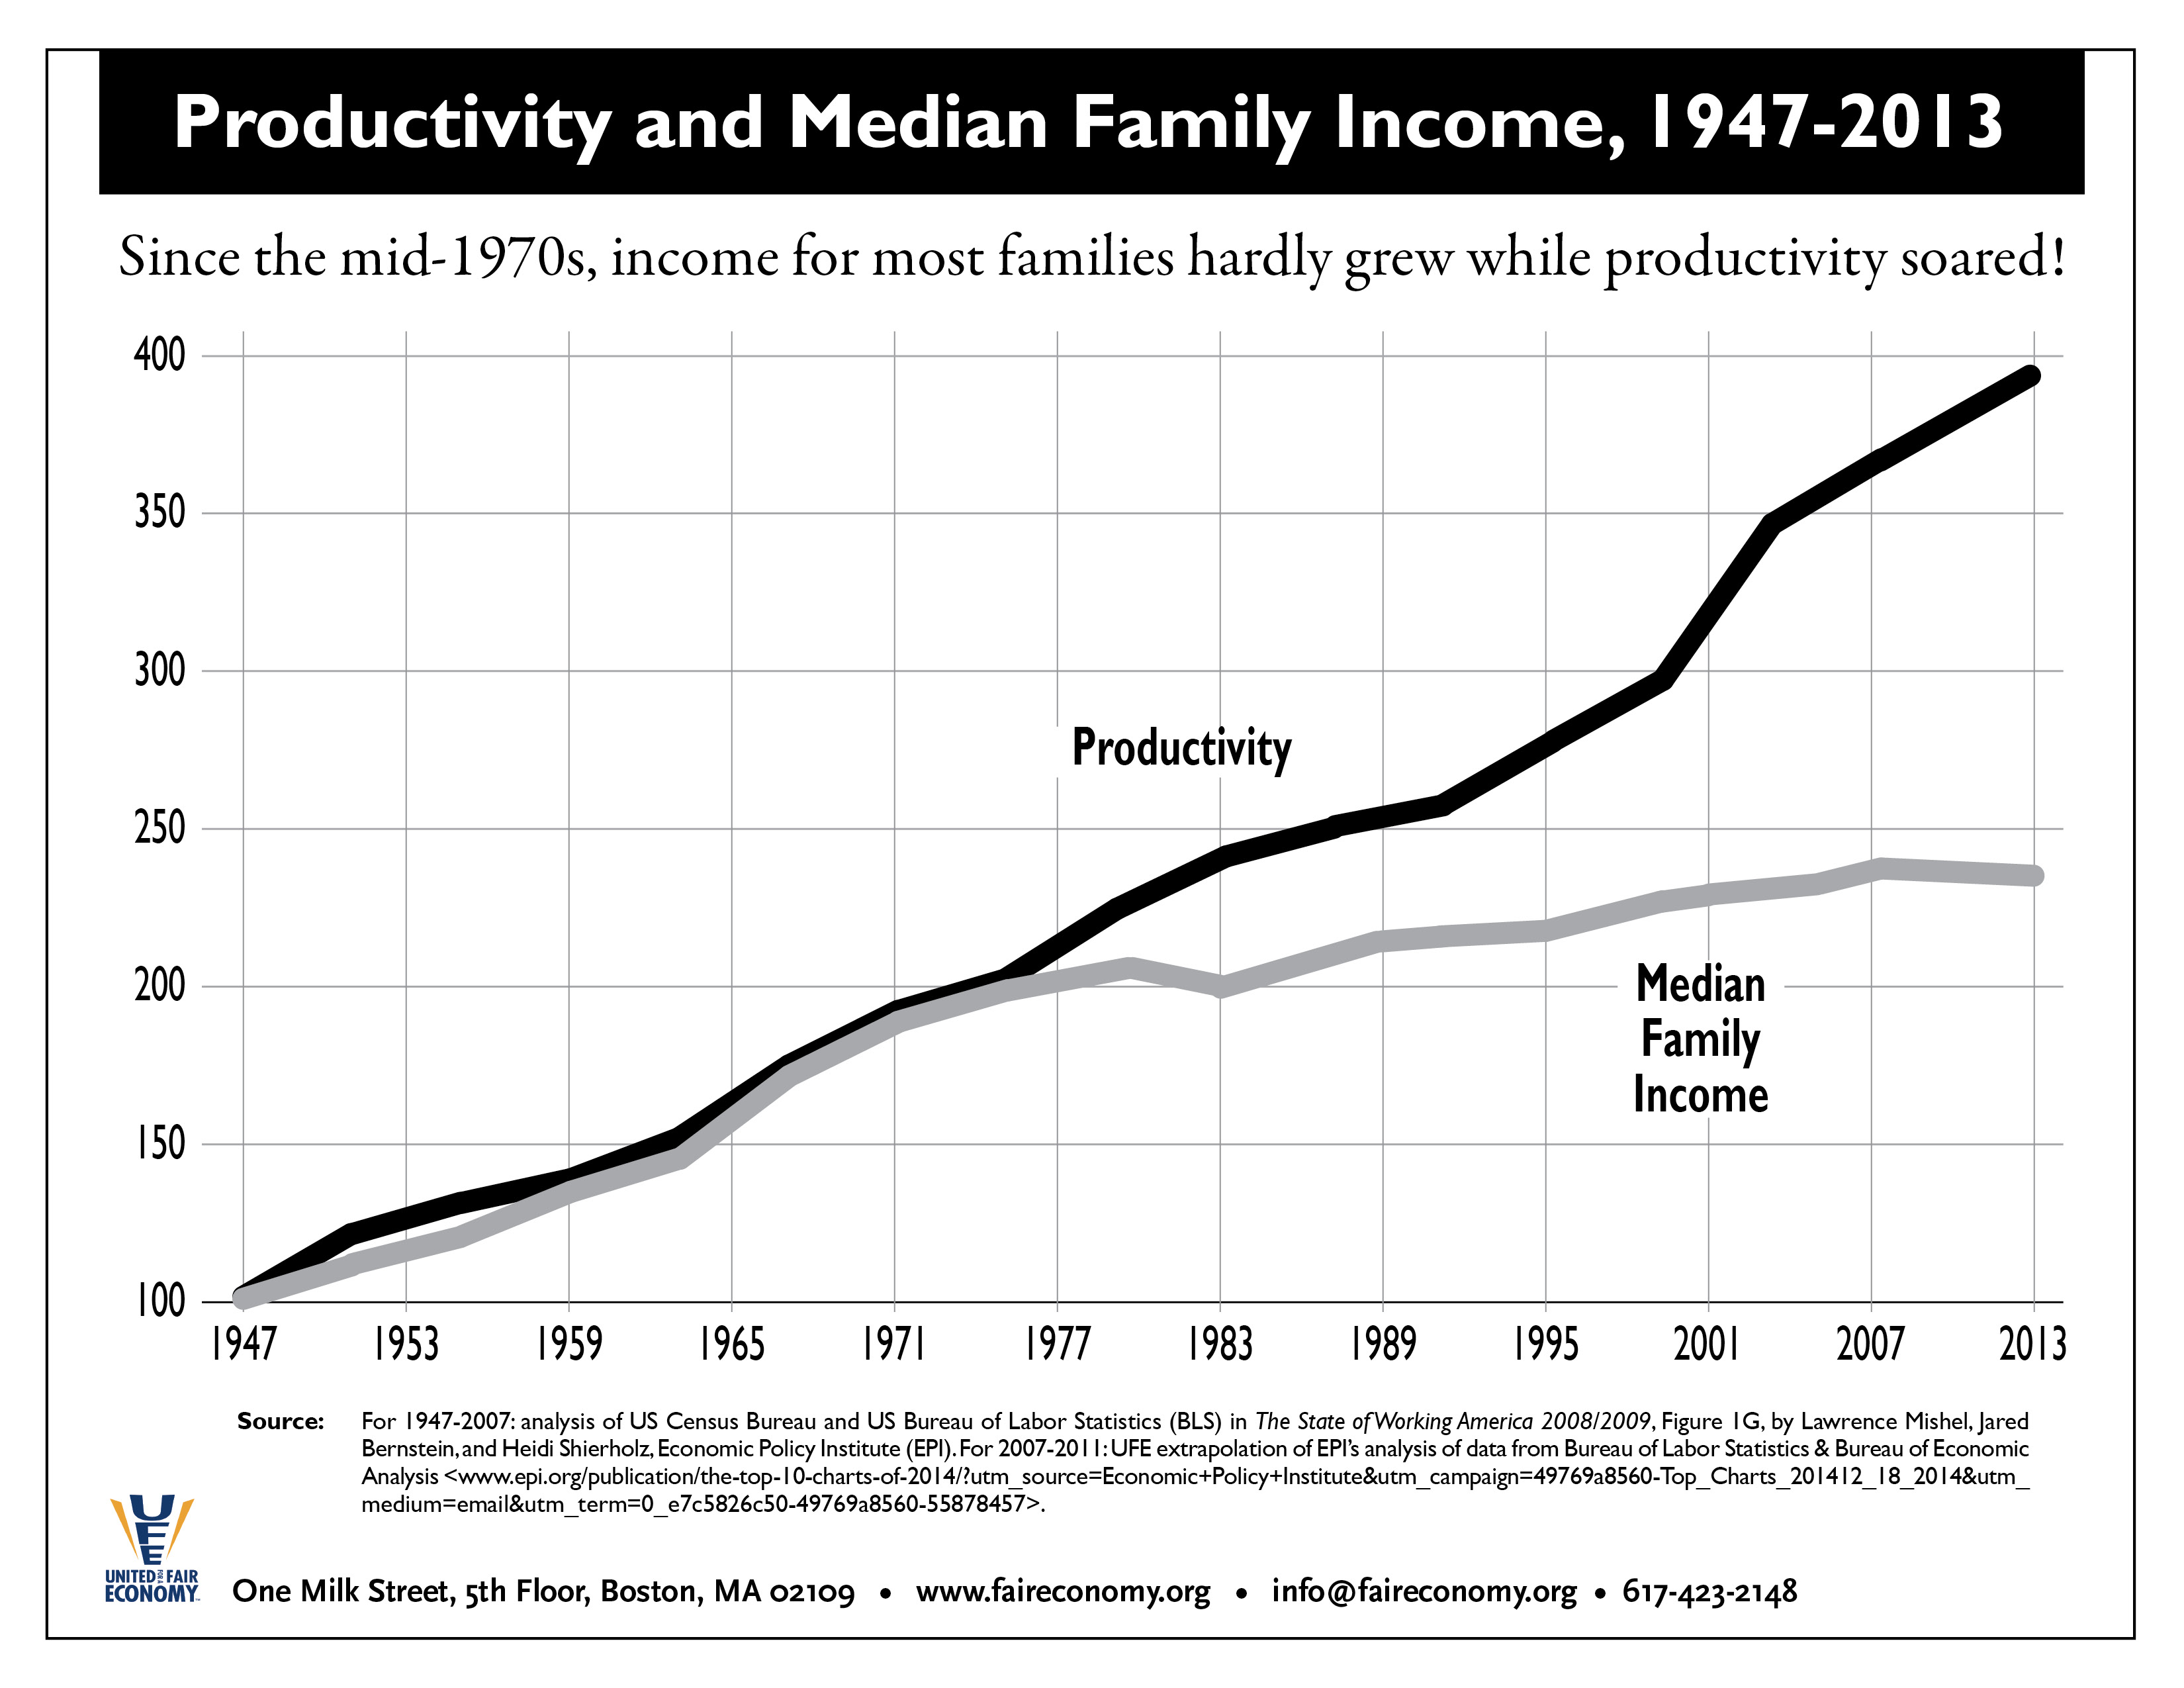 Productivity___Median_Family_Income_1947-2013.jpg